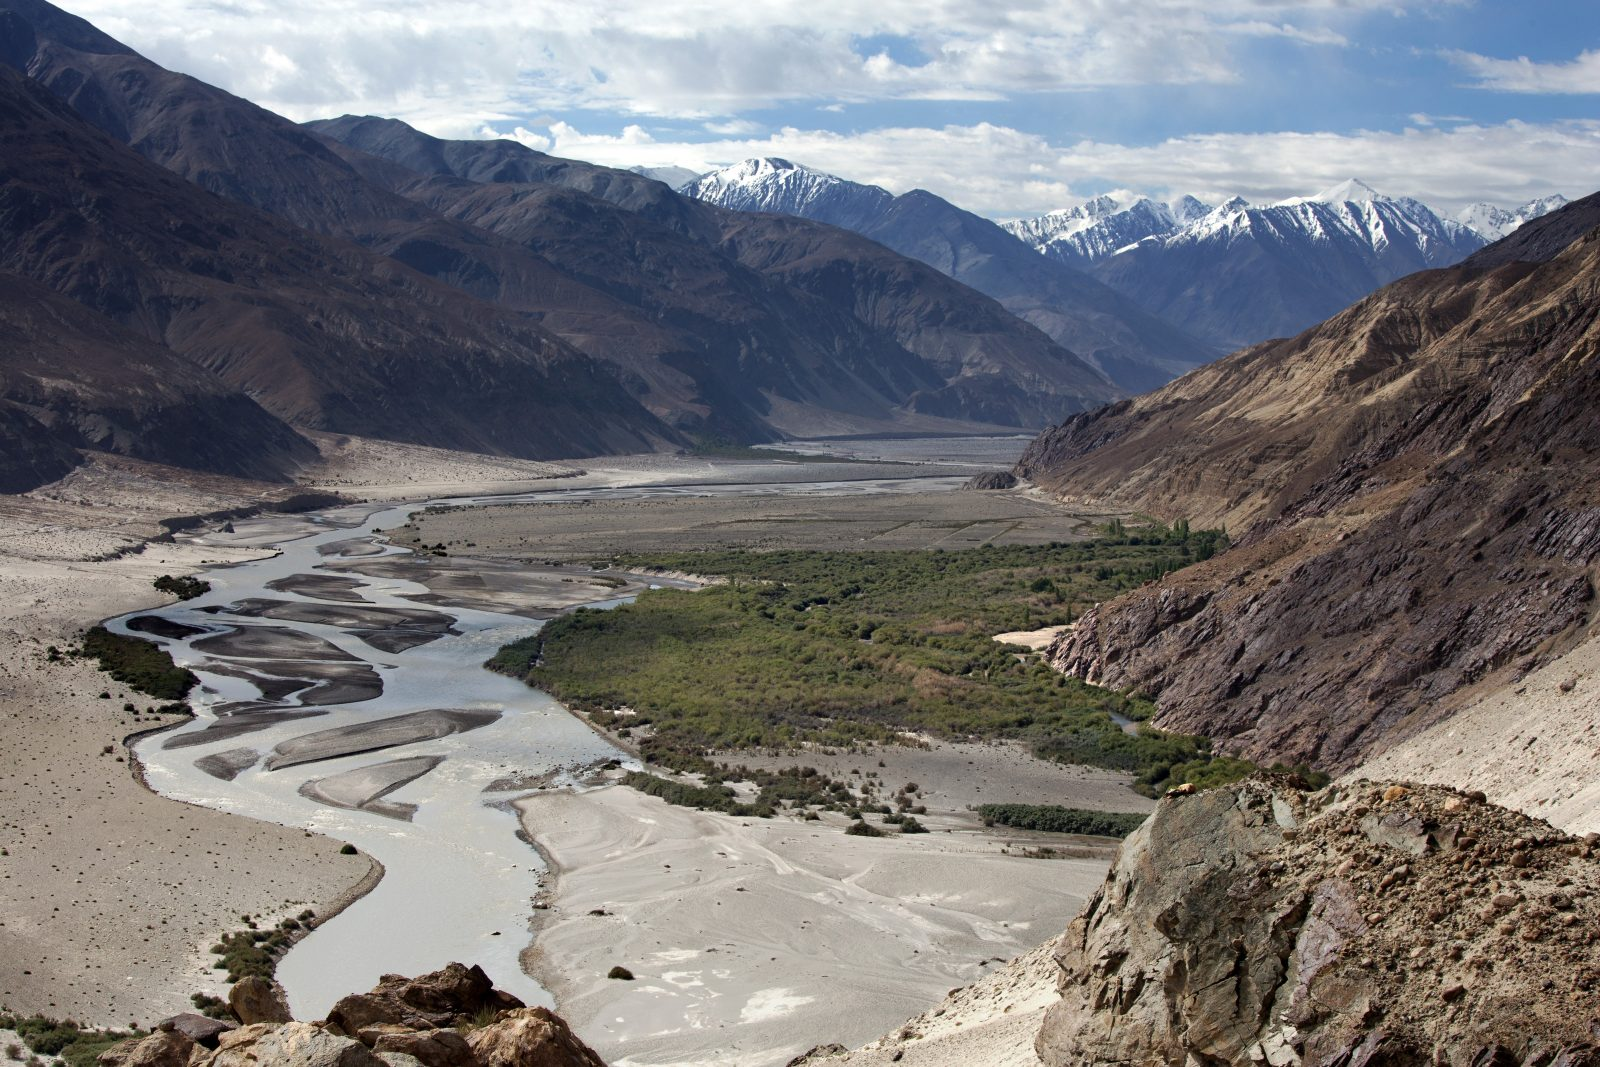 Lookin down at Nubra valley